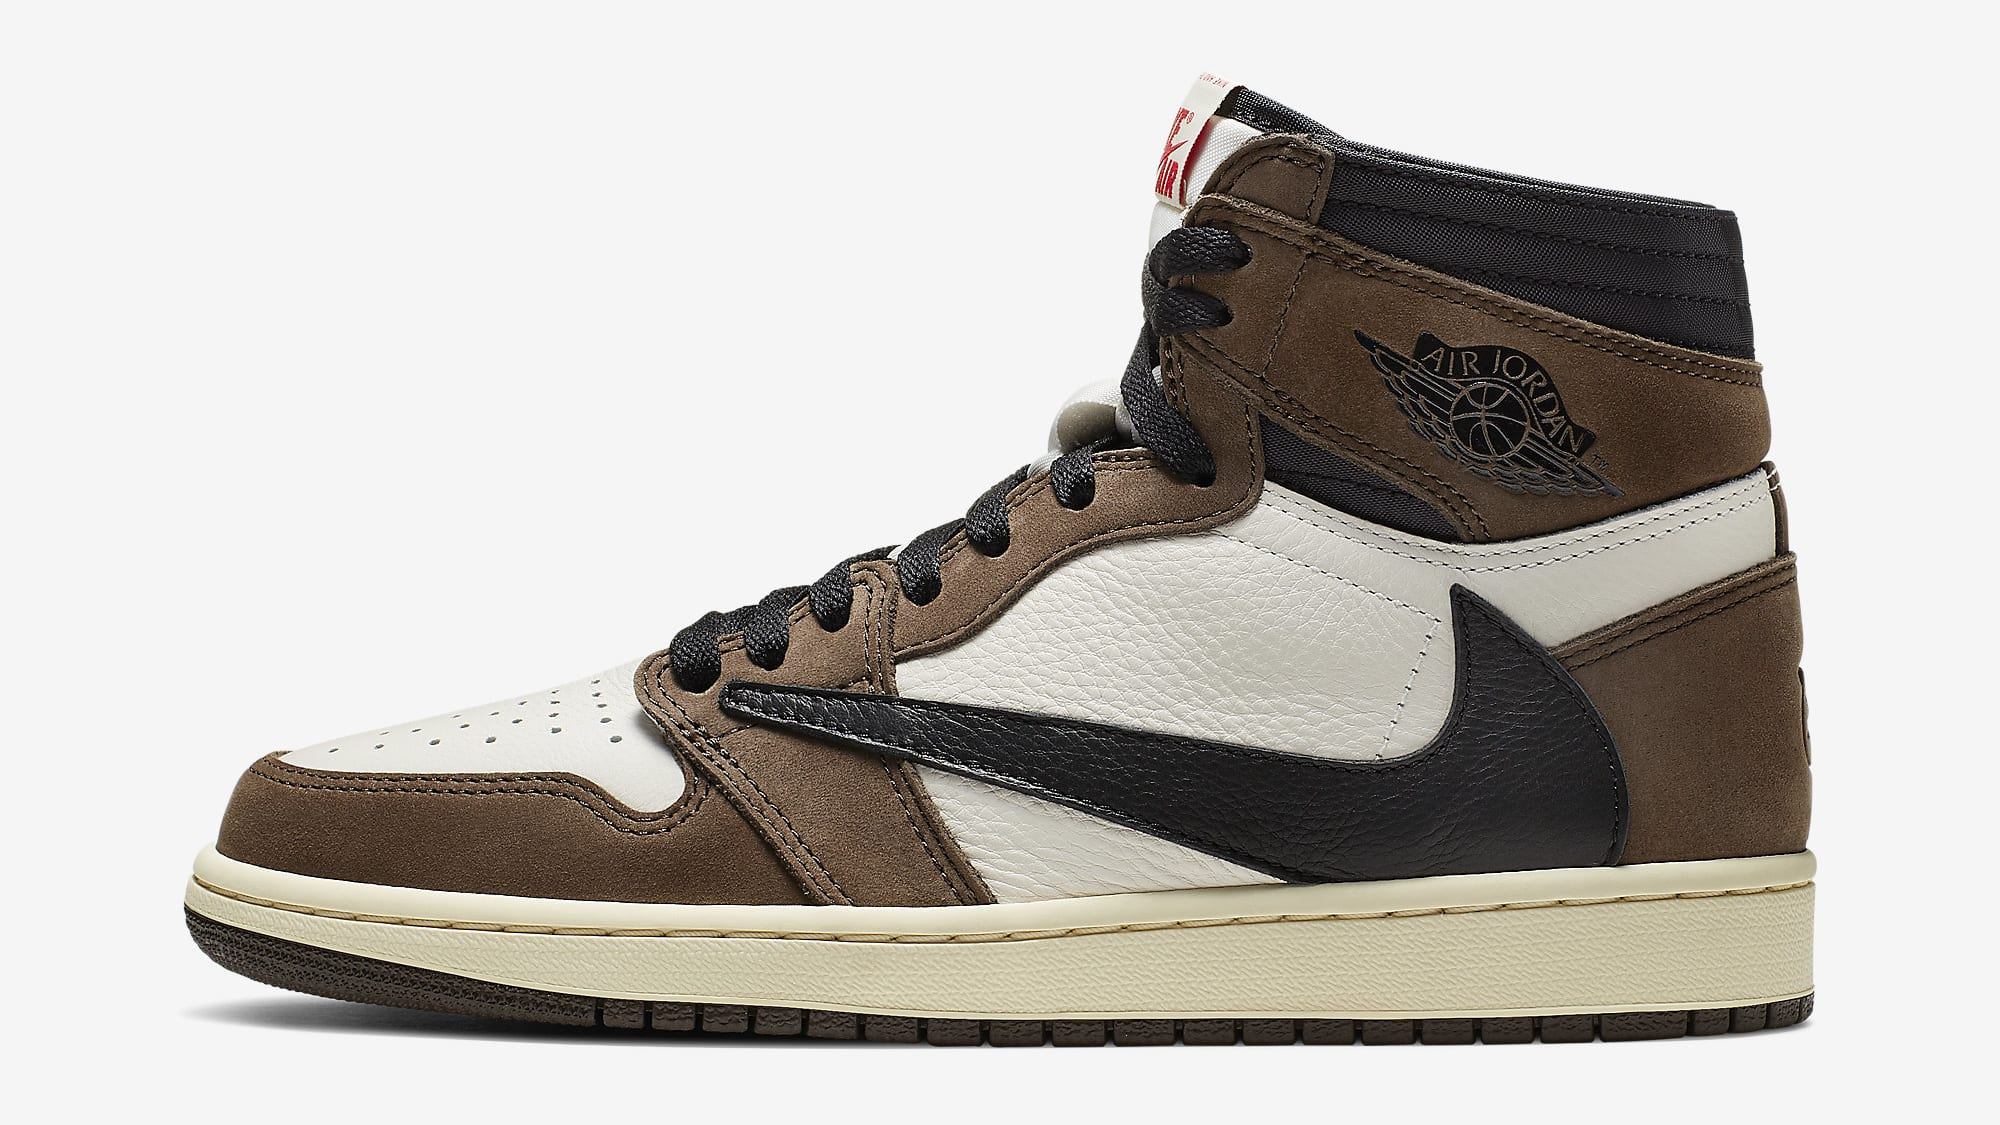 Travis Scott x Air Jordan 1 Brown Release Date CD4487-100 Profile